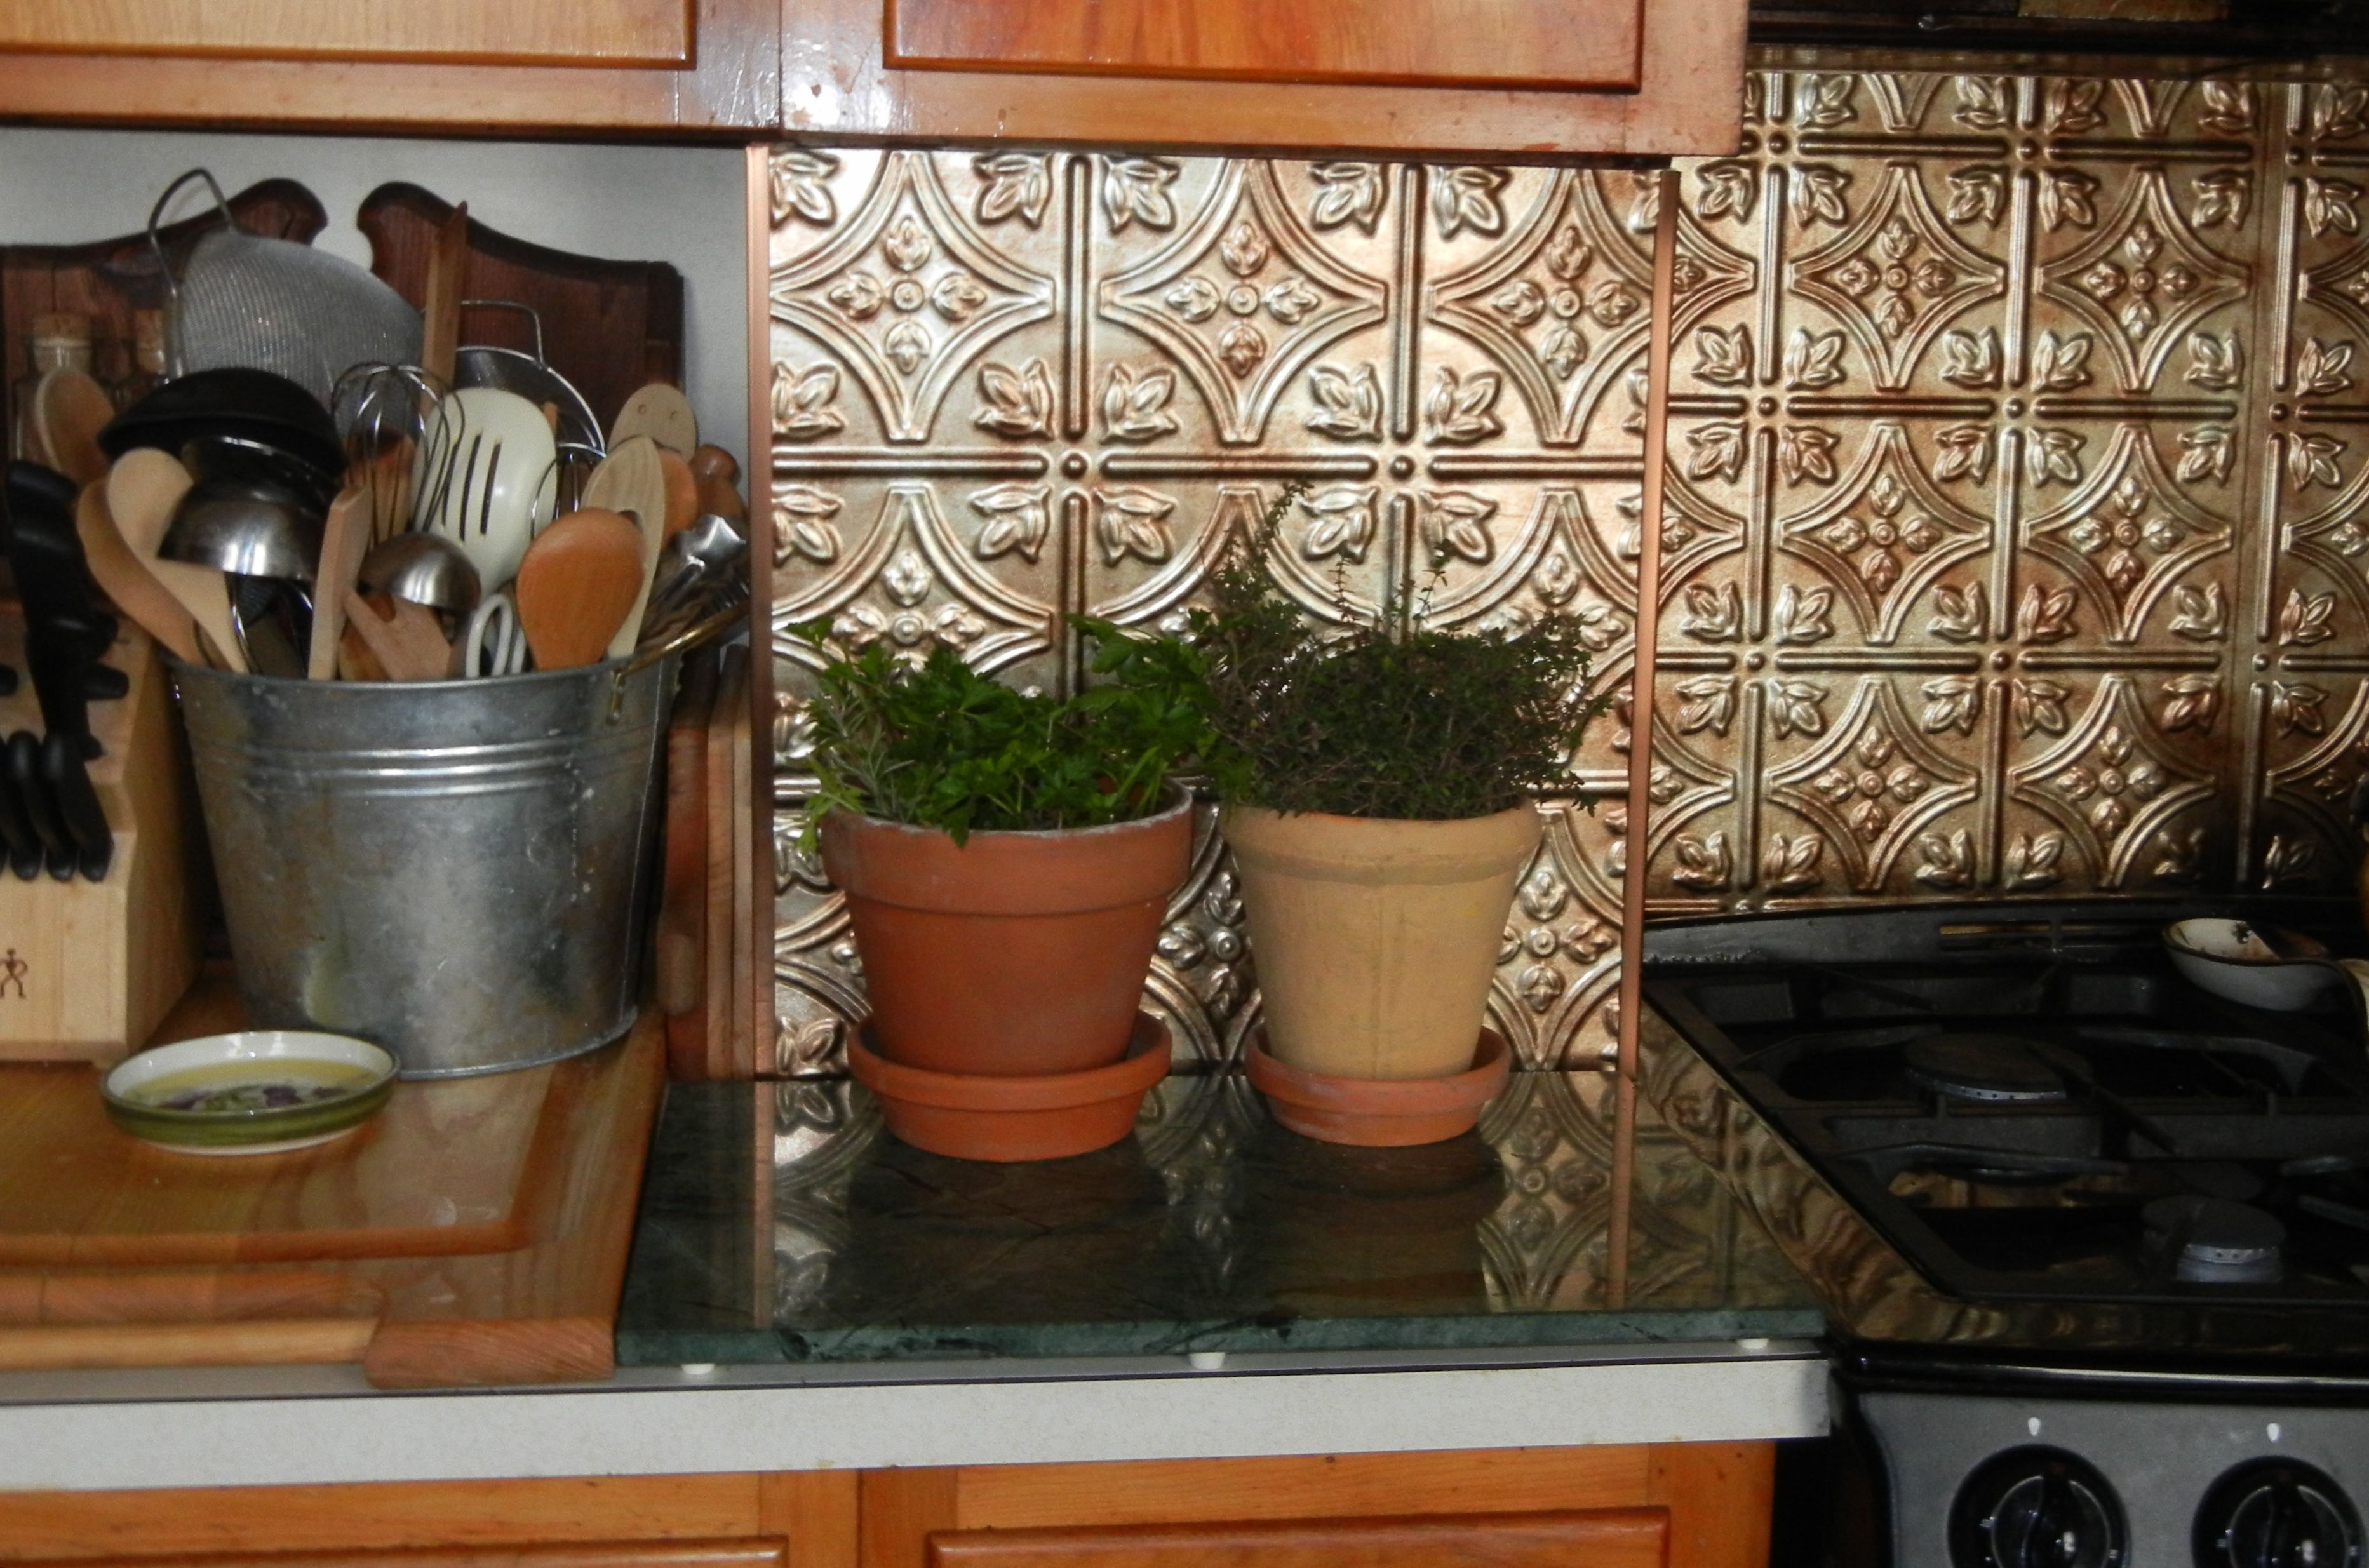 Working on updating the kitchen with color, contrast and texture making it a cook's haven.